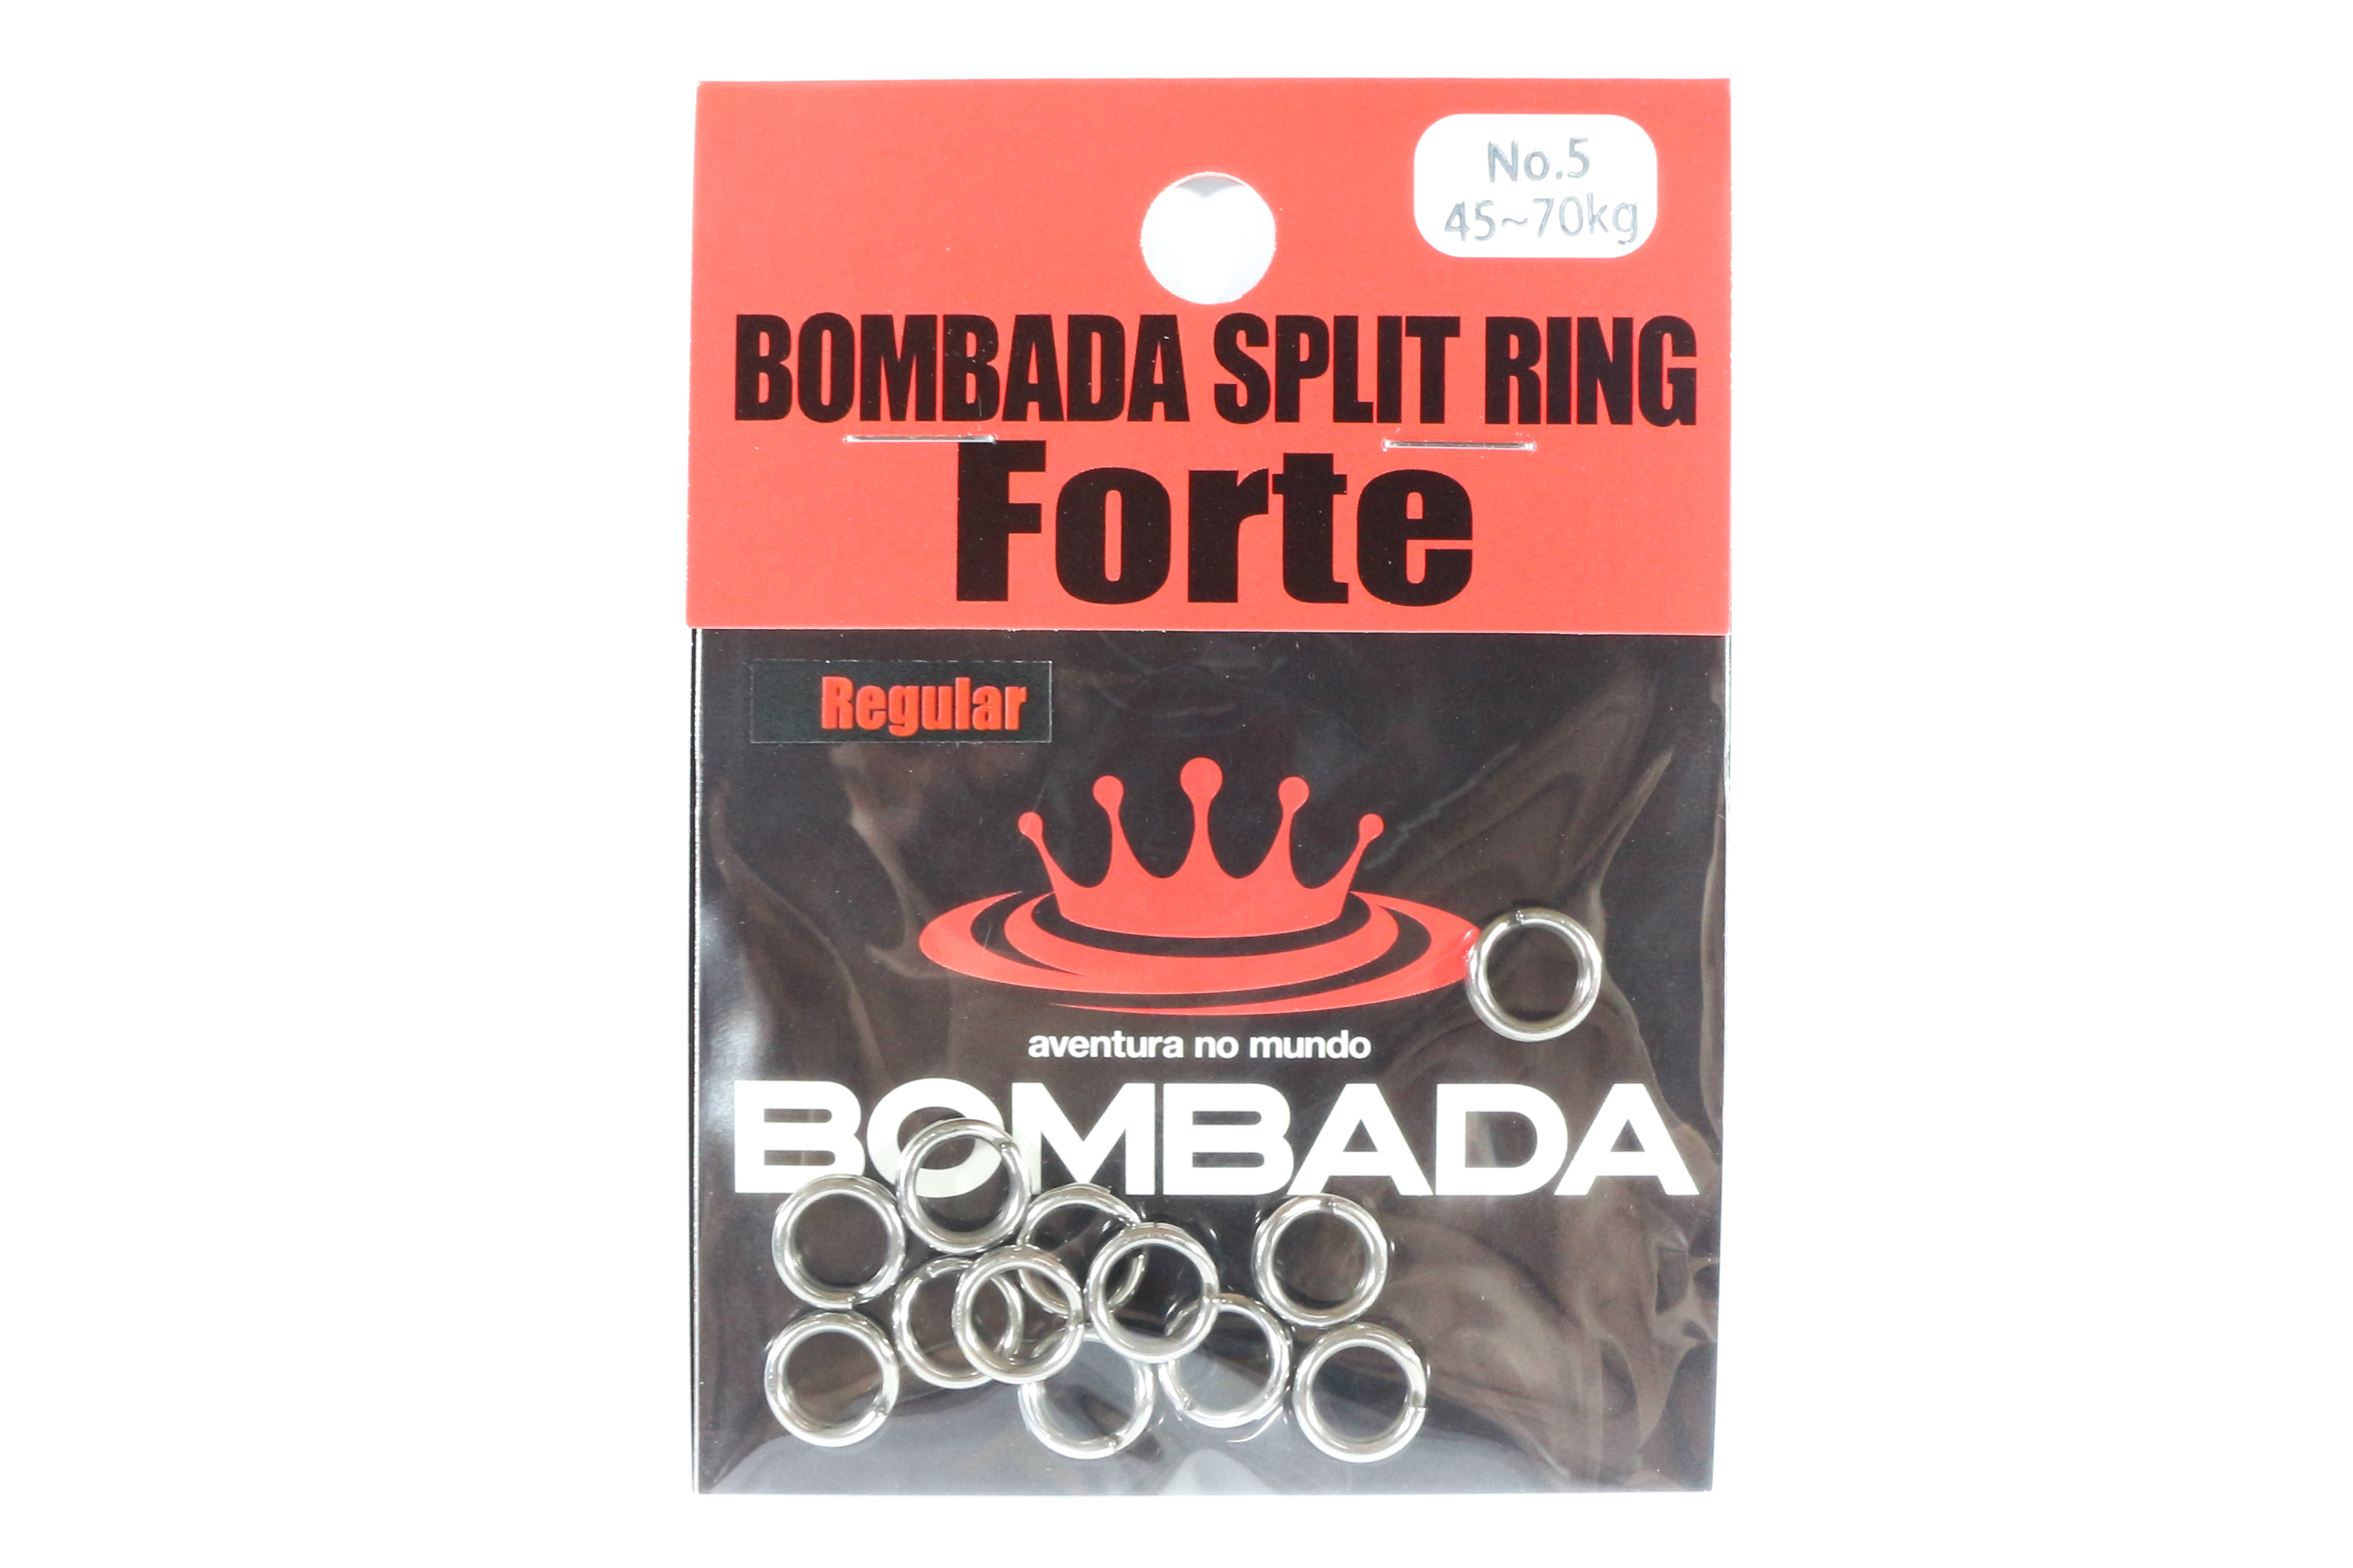 Bombada Split Rings Forte Regular Pack Heavy Duty Size 5 (1041)